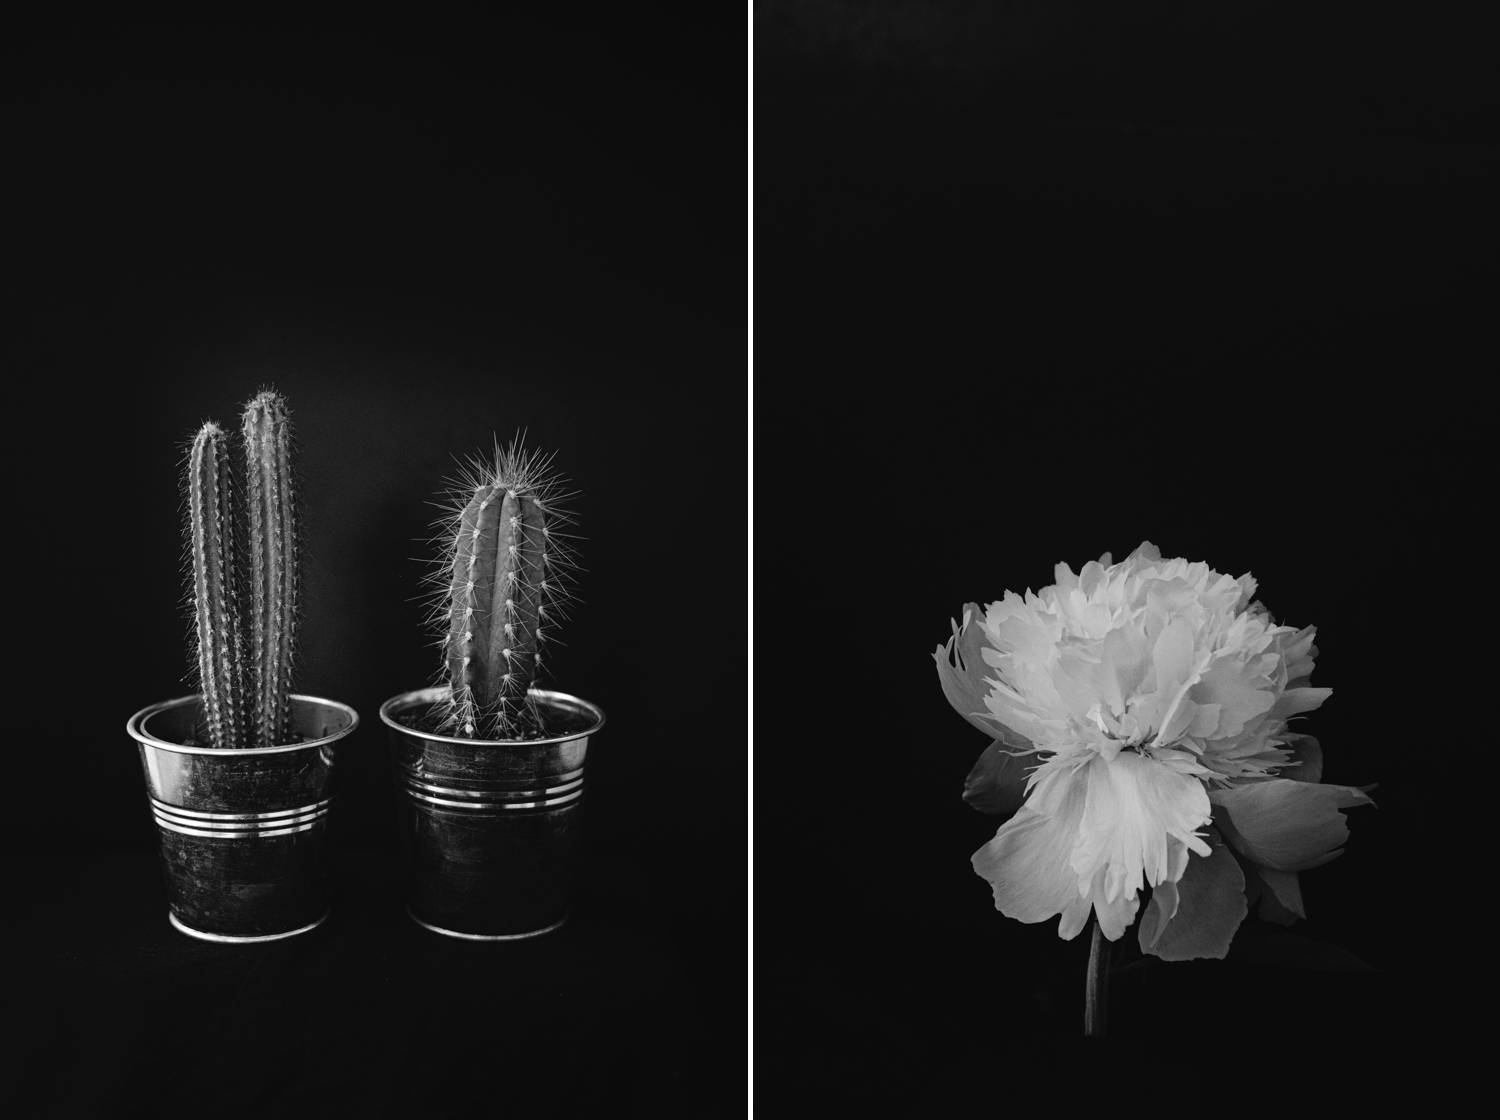 Sell fine art photography online like Joshua Wyborn, whose moody images of landscapes, flora, and fauna help him earn passive income during slower months.